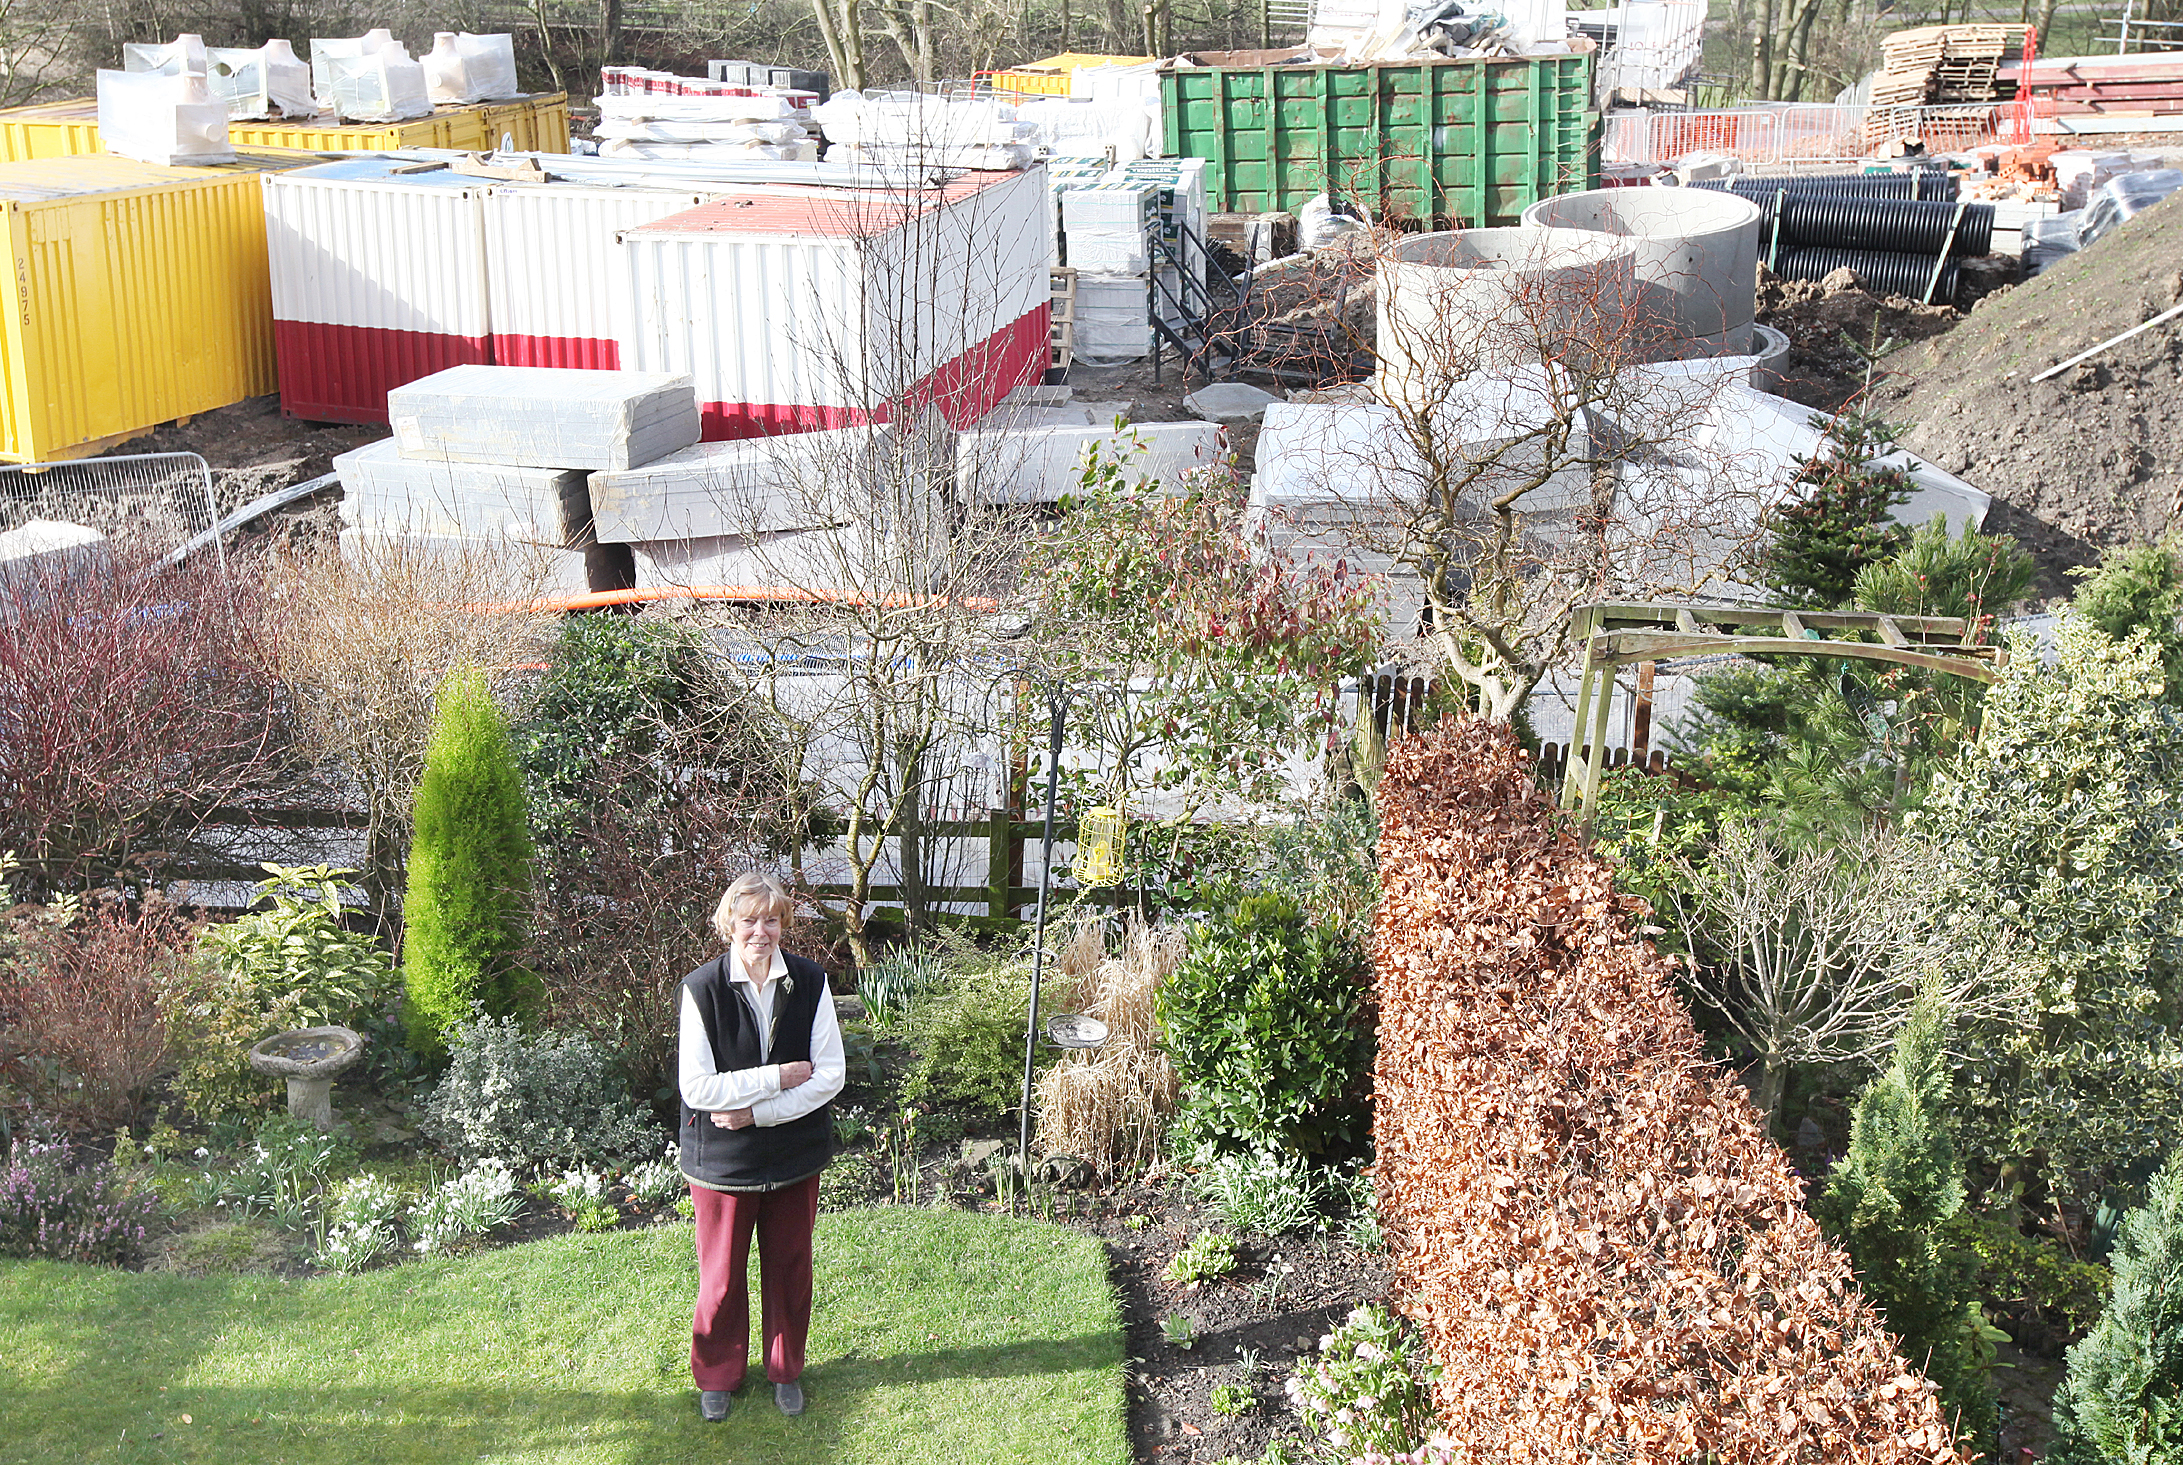 Claire Watters pictured with the development at the end of her garden